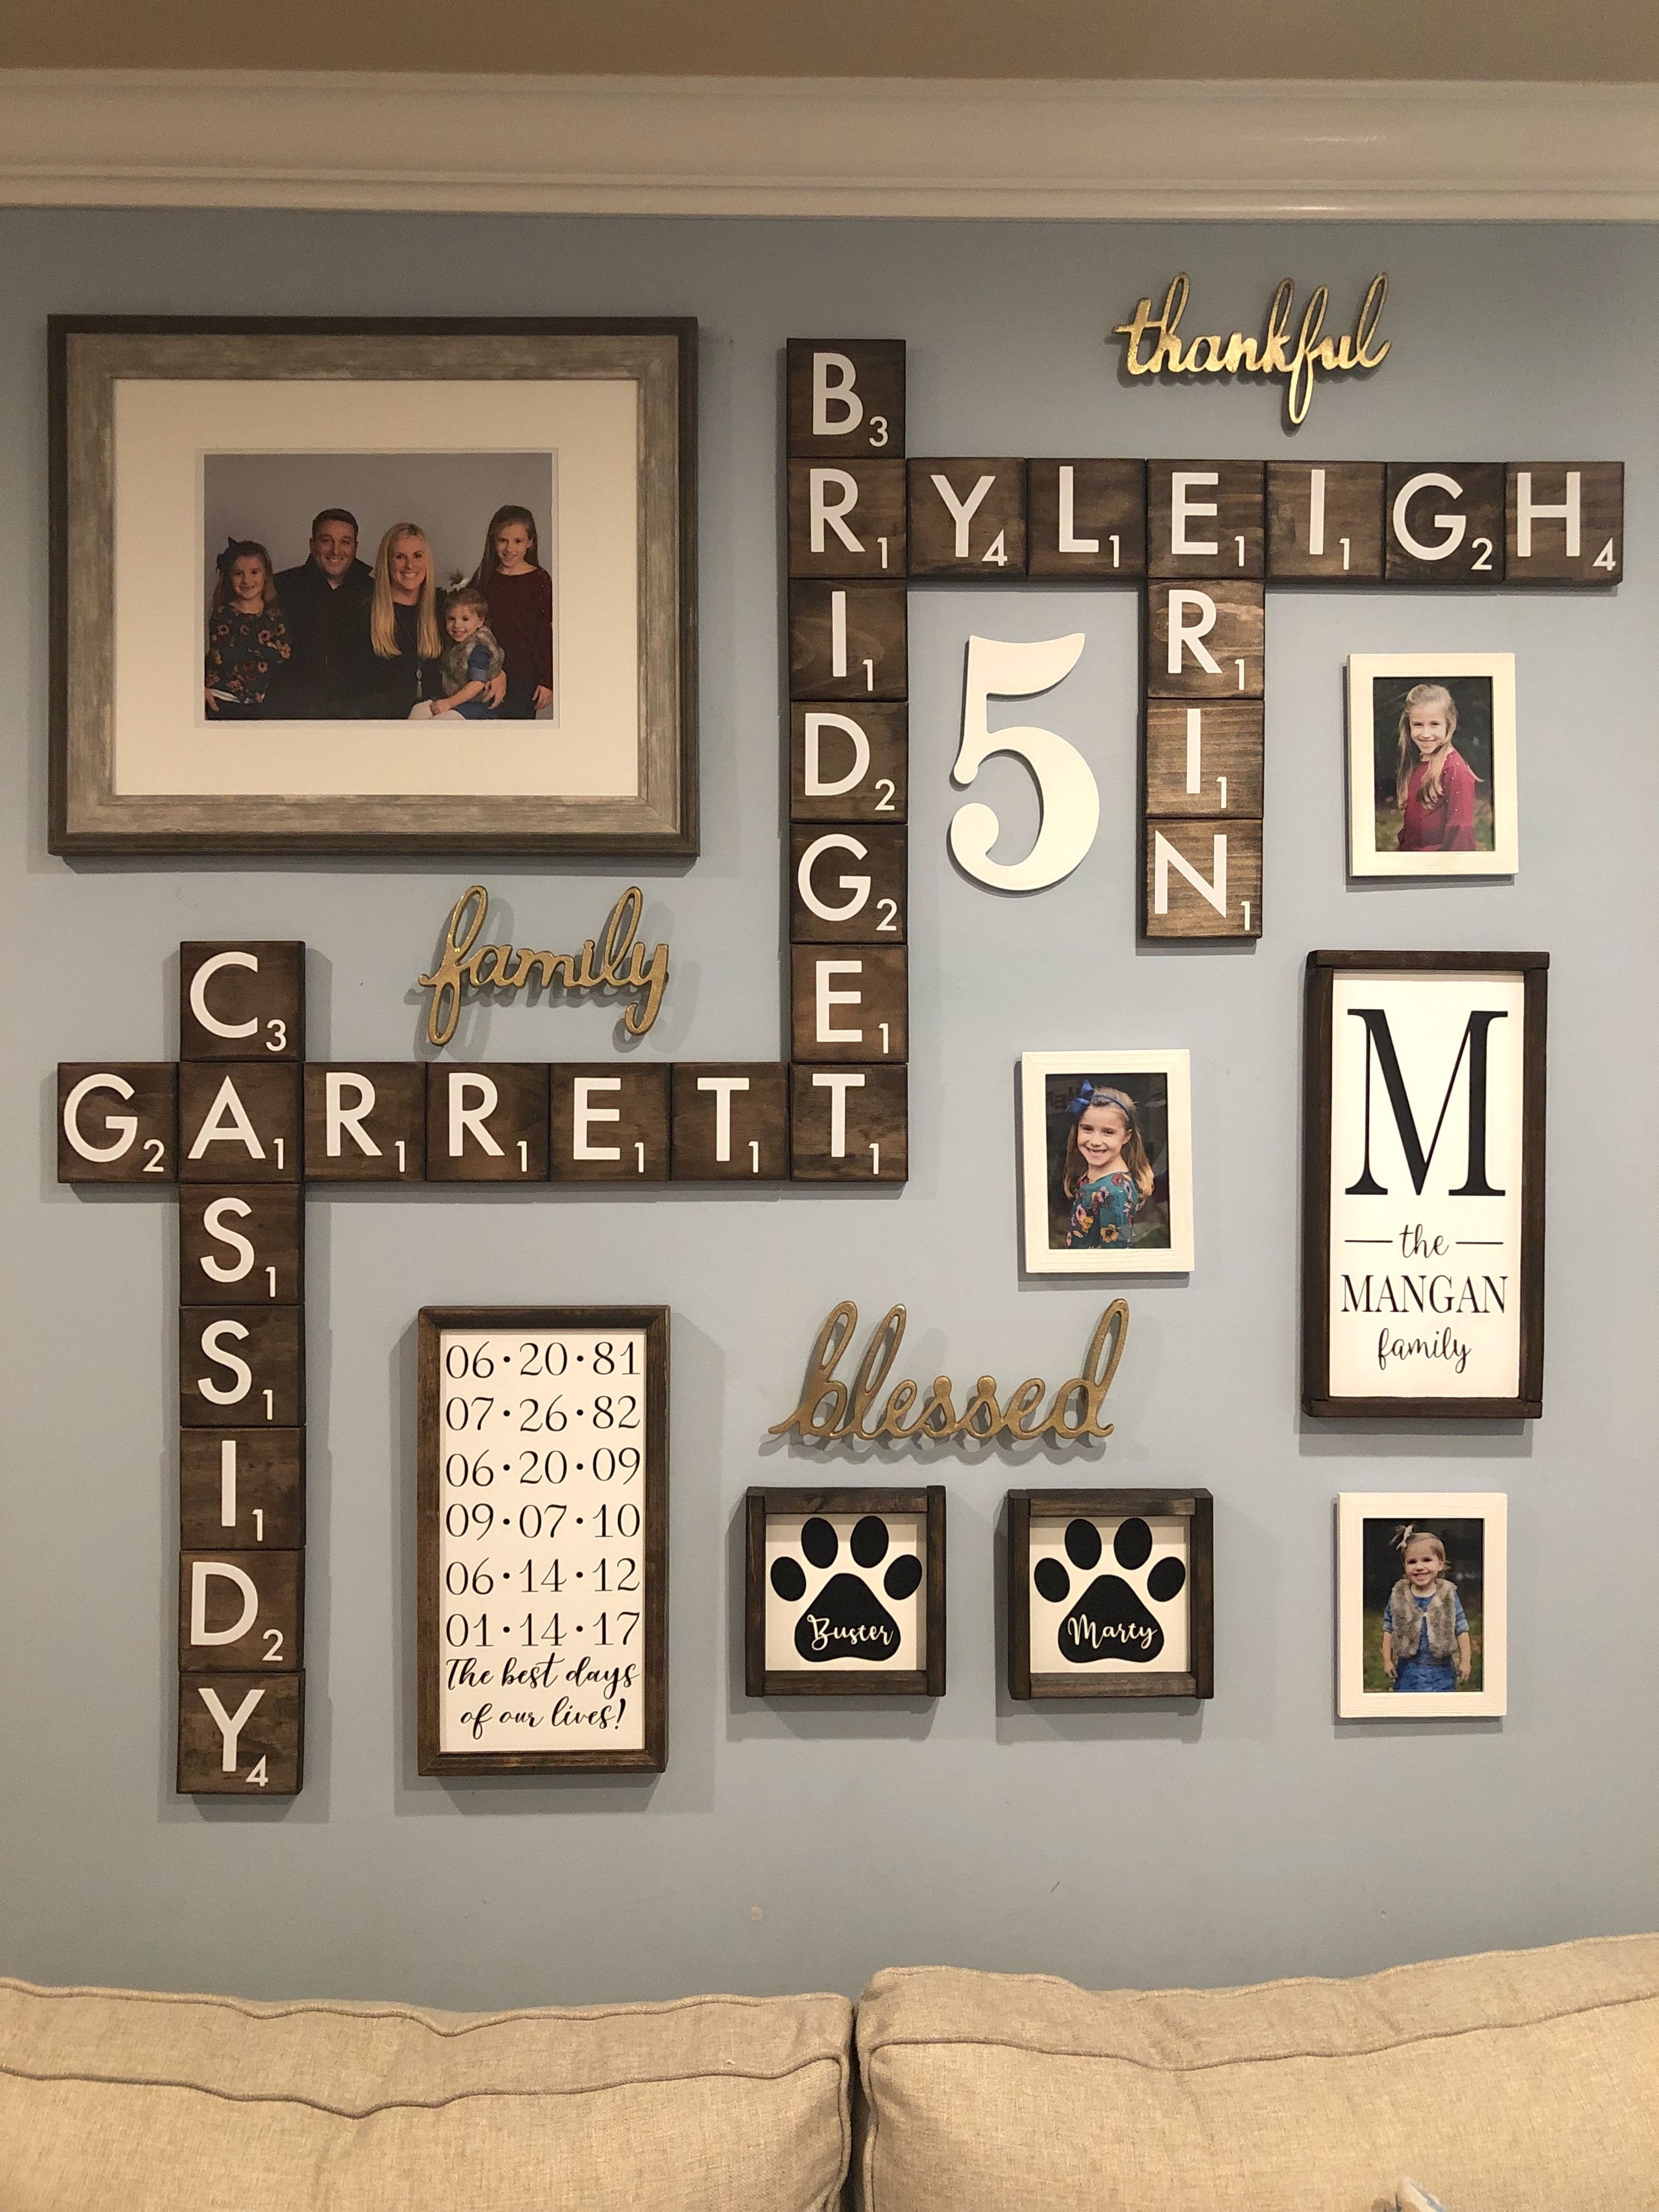 Scrabble Tile Gallery Wall Family Wall Decor Family Pictures On Wall Family Wall Art